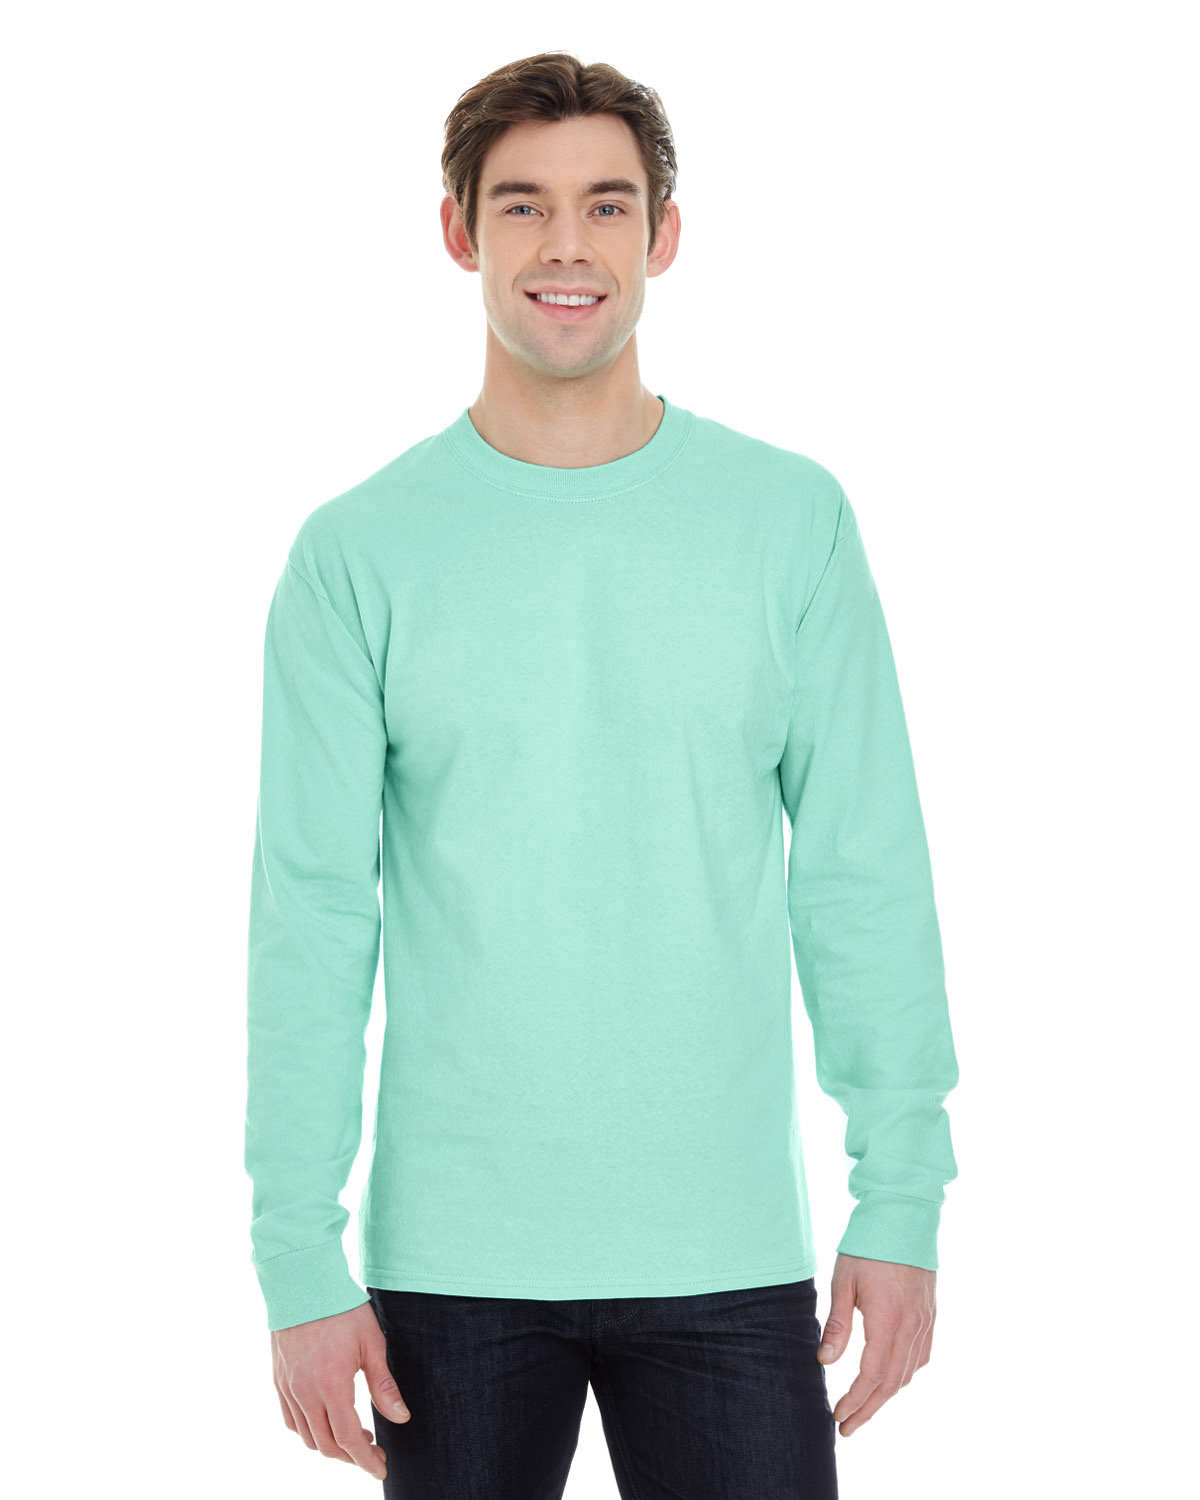 Hanes Adult Long-Sleeve Beefy-T® CLEAN MINT